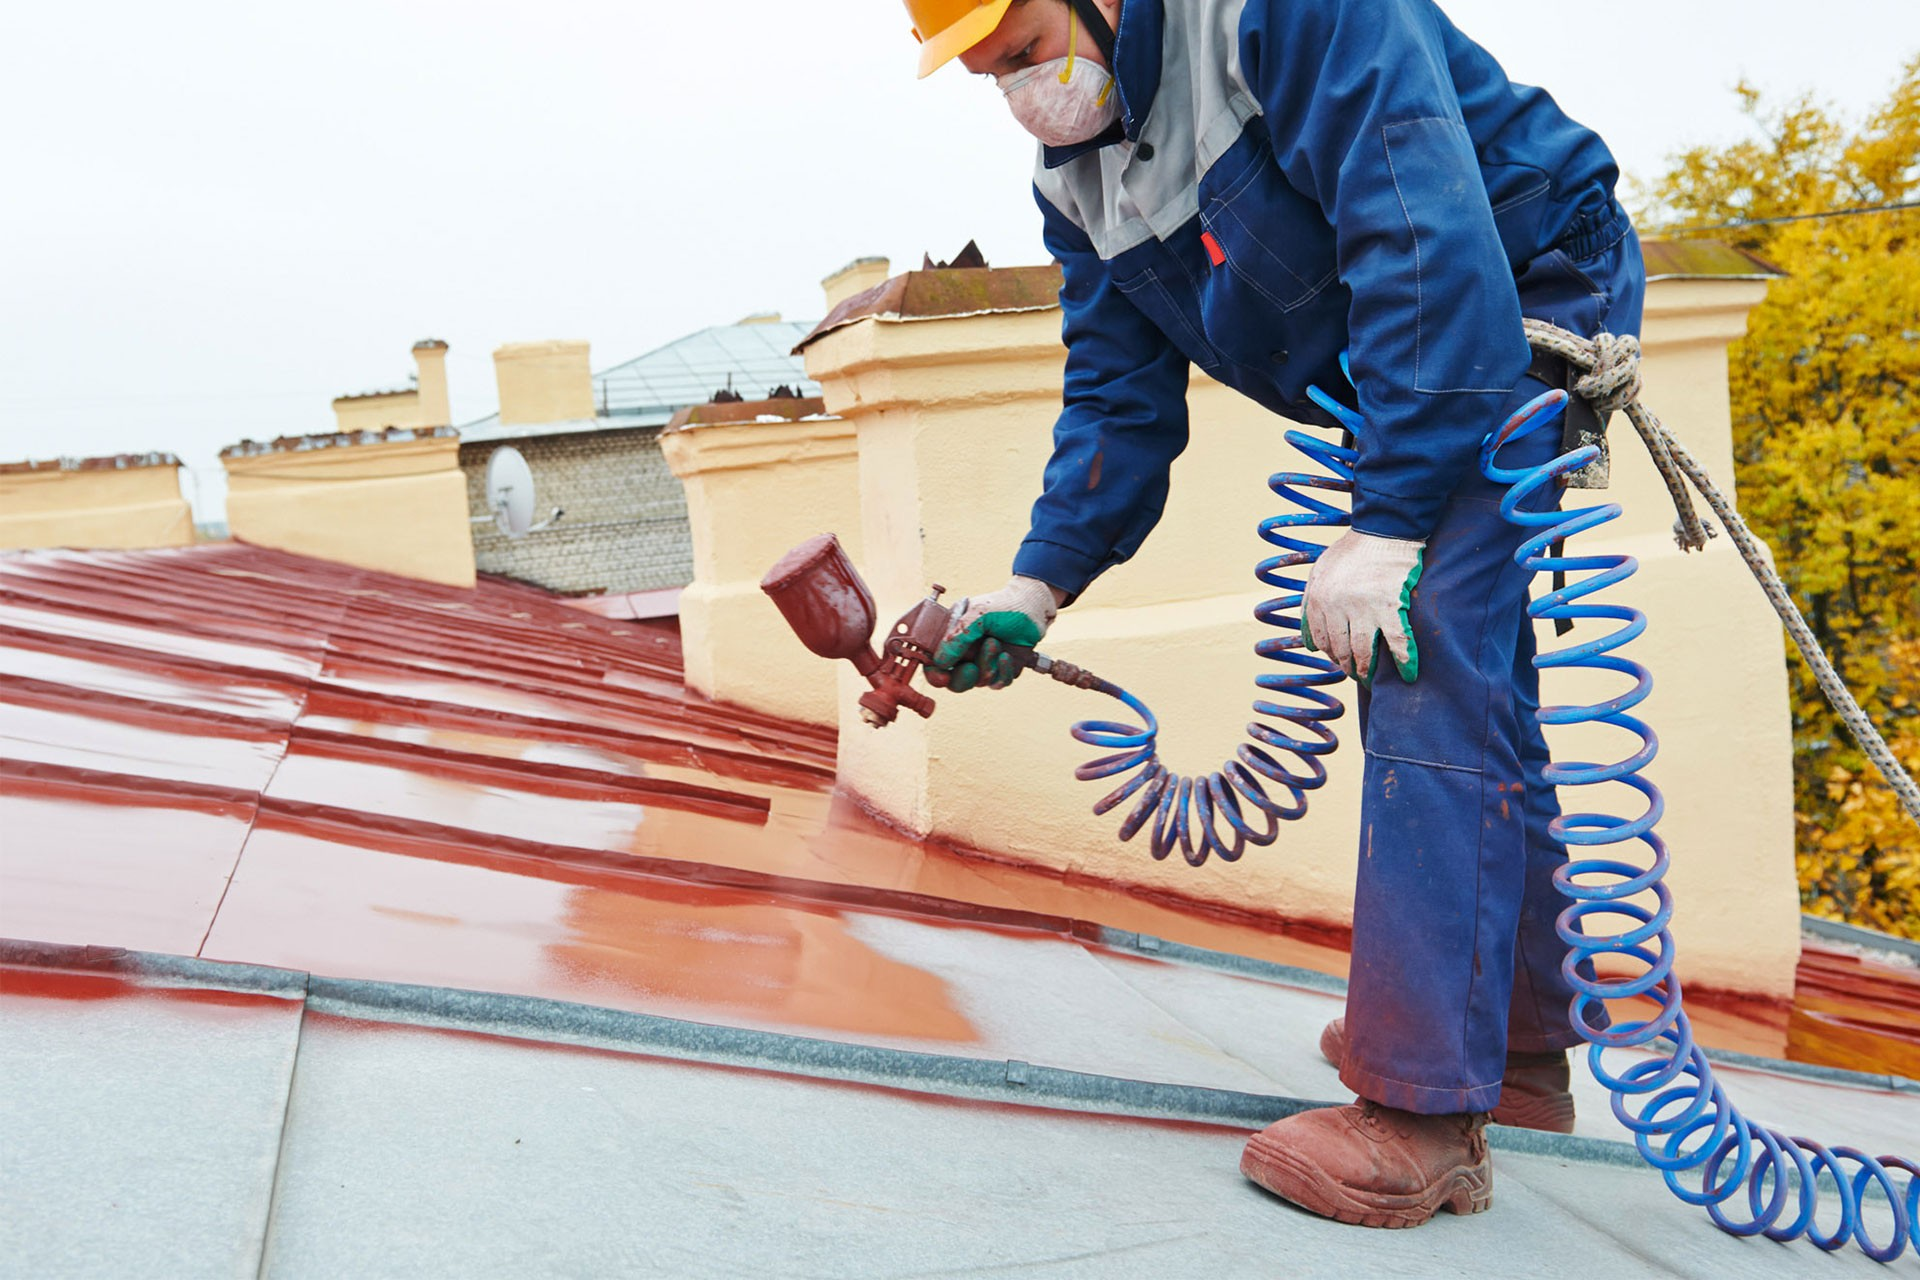 Humble-Sugar Land TX Professional Painting Contractors-We offer Residential & Commercial Painting, Interior Painting, Exterior Painting, Primer Painting, Industrial Painting, Professional Painters, Institutional Painters, and more.